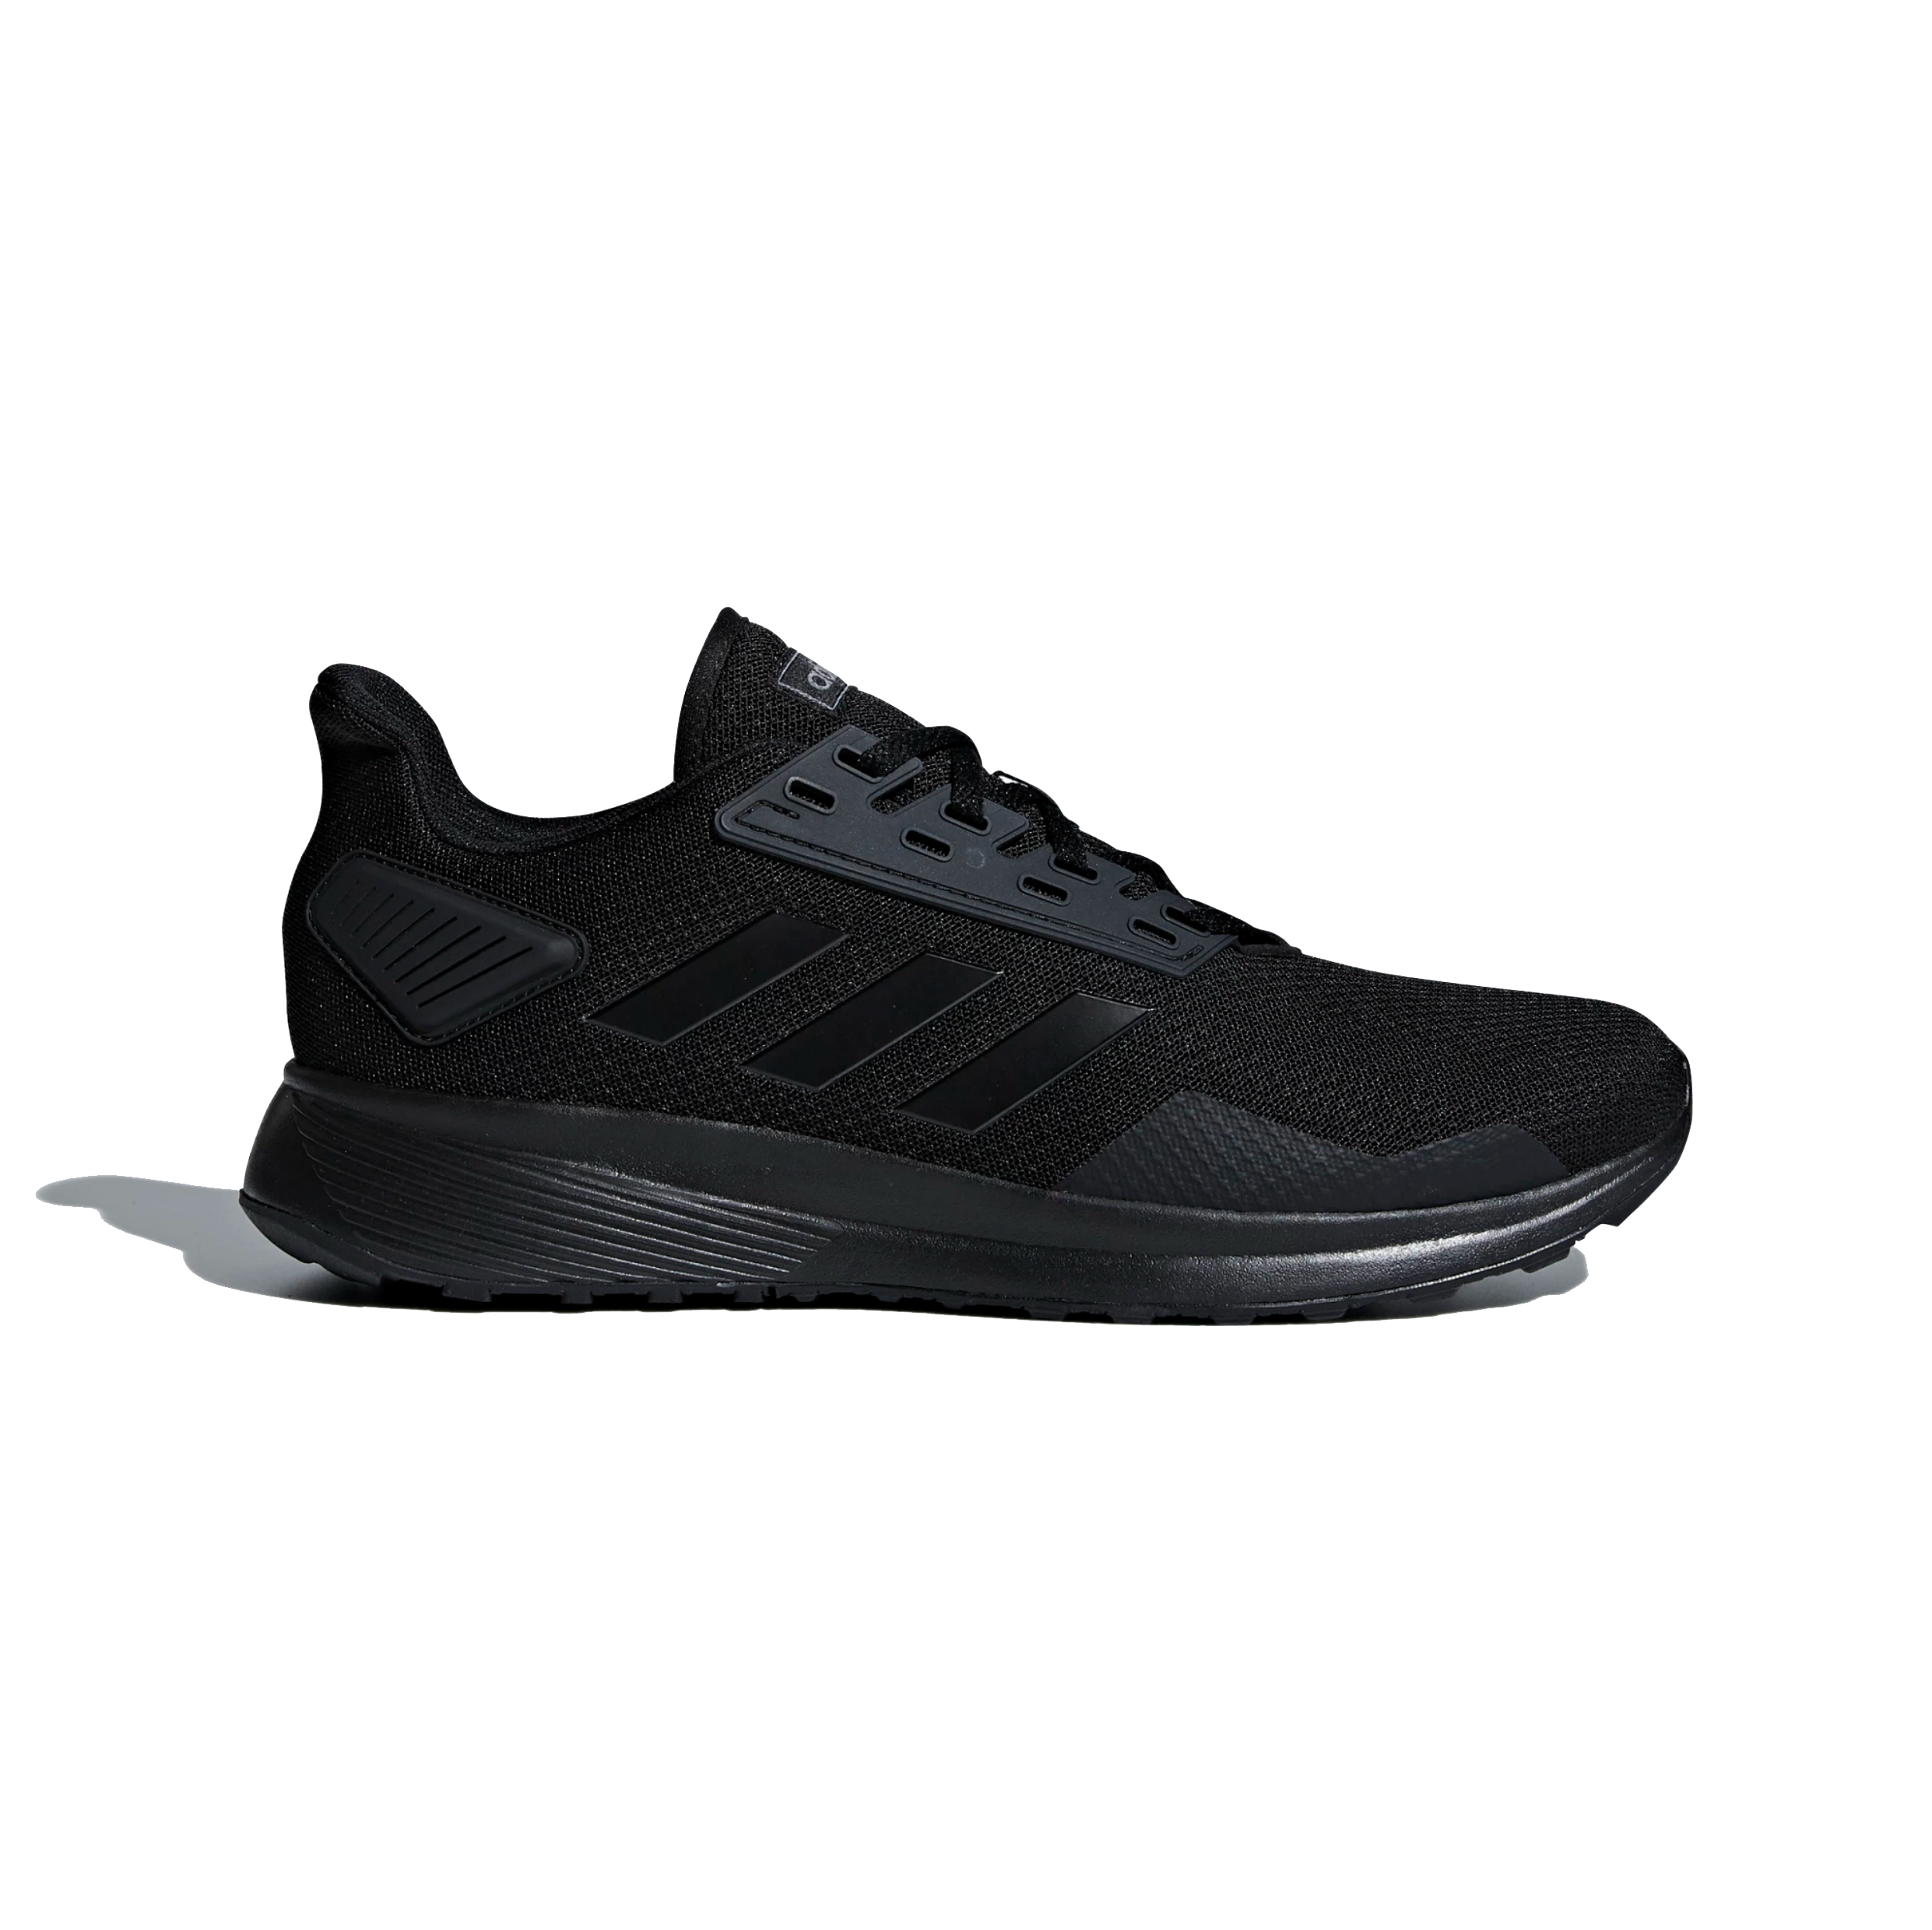 7e10ddf0a684 Details about Adidas B96578 Men s Duramo 9 Running Shoes